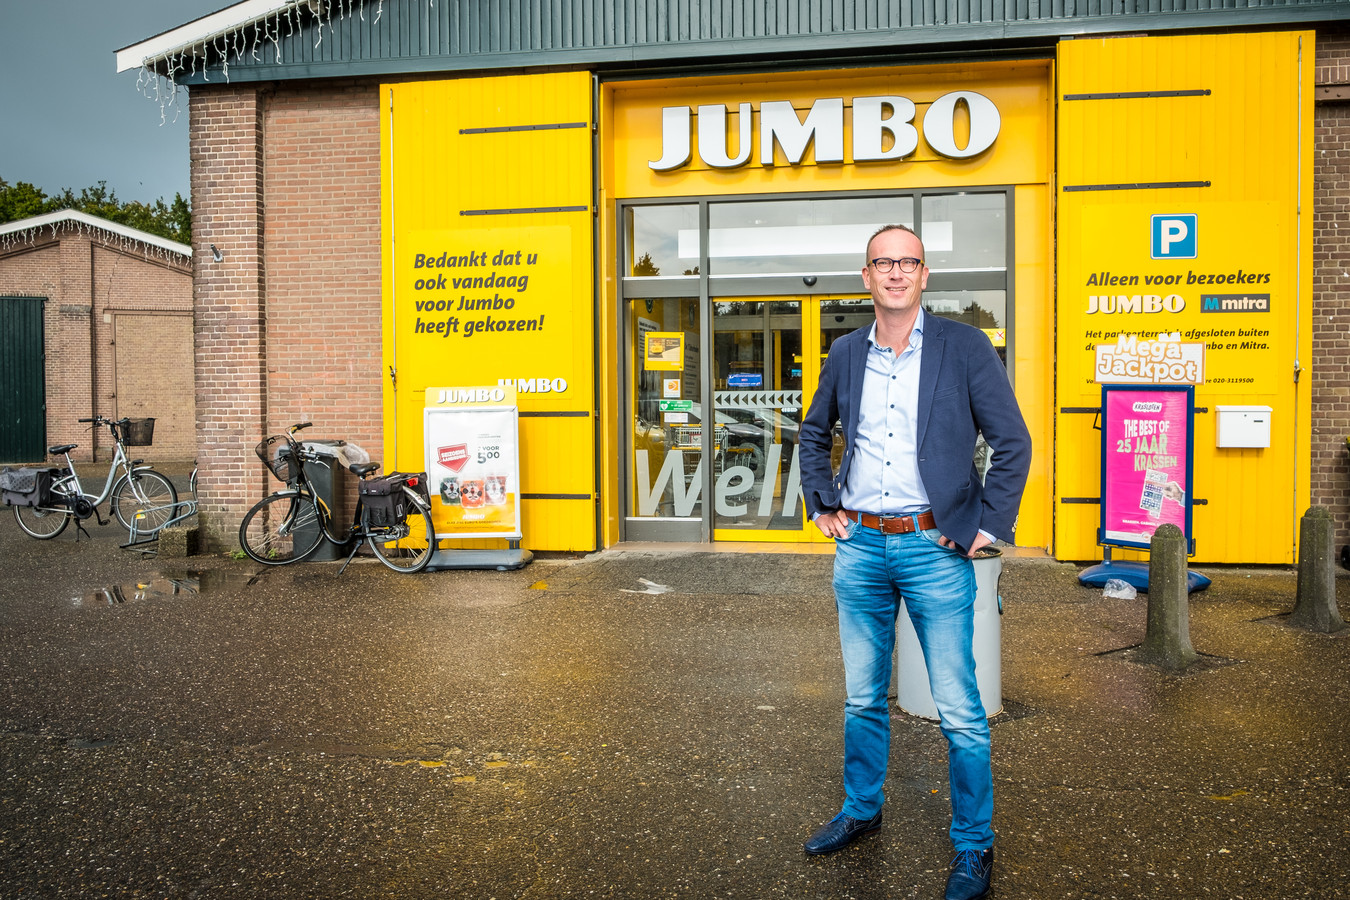 Gerrit Roeke in september 2019, kort nadat hij Jumbo Elburg had overgenomen. Over de coronabesmettingen onder zijn personeel zegt hij nu: ,,We hebben geen paniek, niemand is doodziek.''